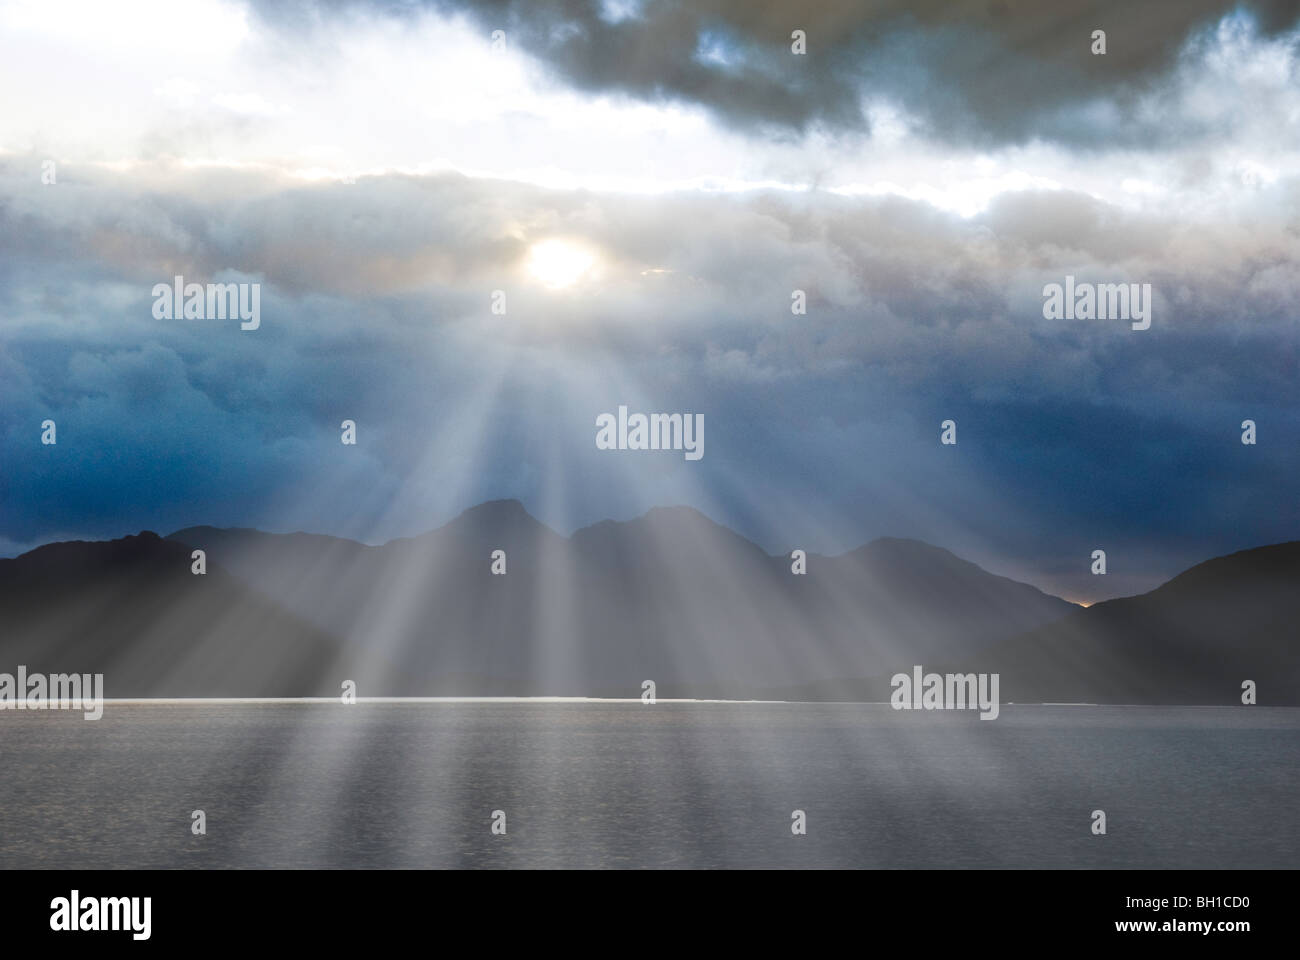 Sunrays over the Strait of Magellan in Chile - Stock Image